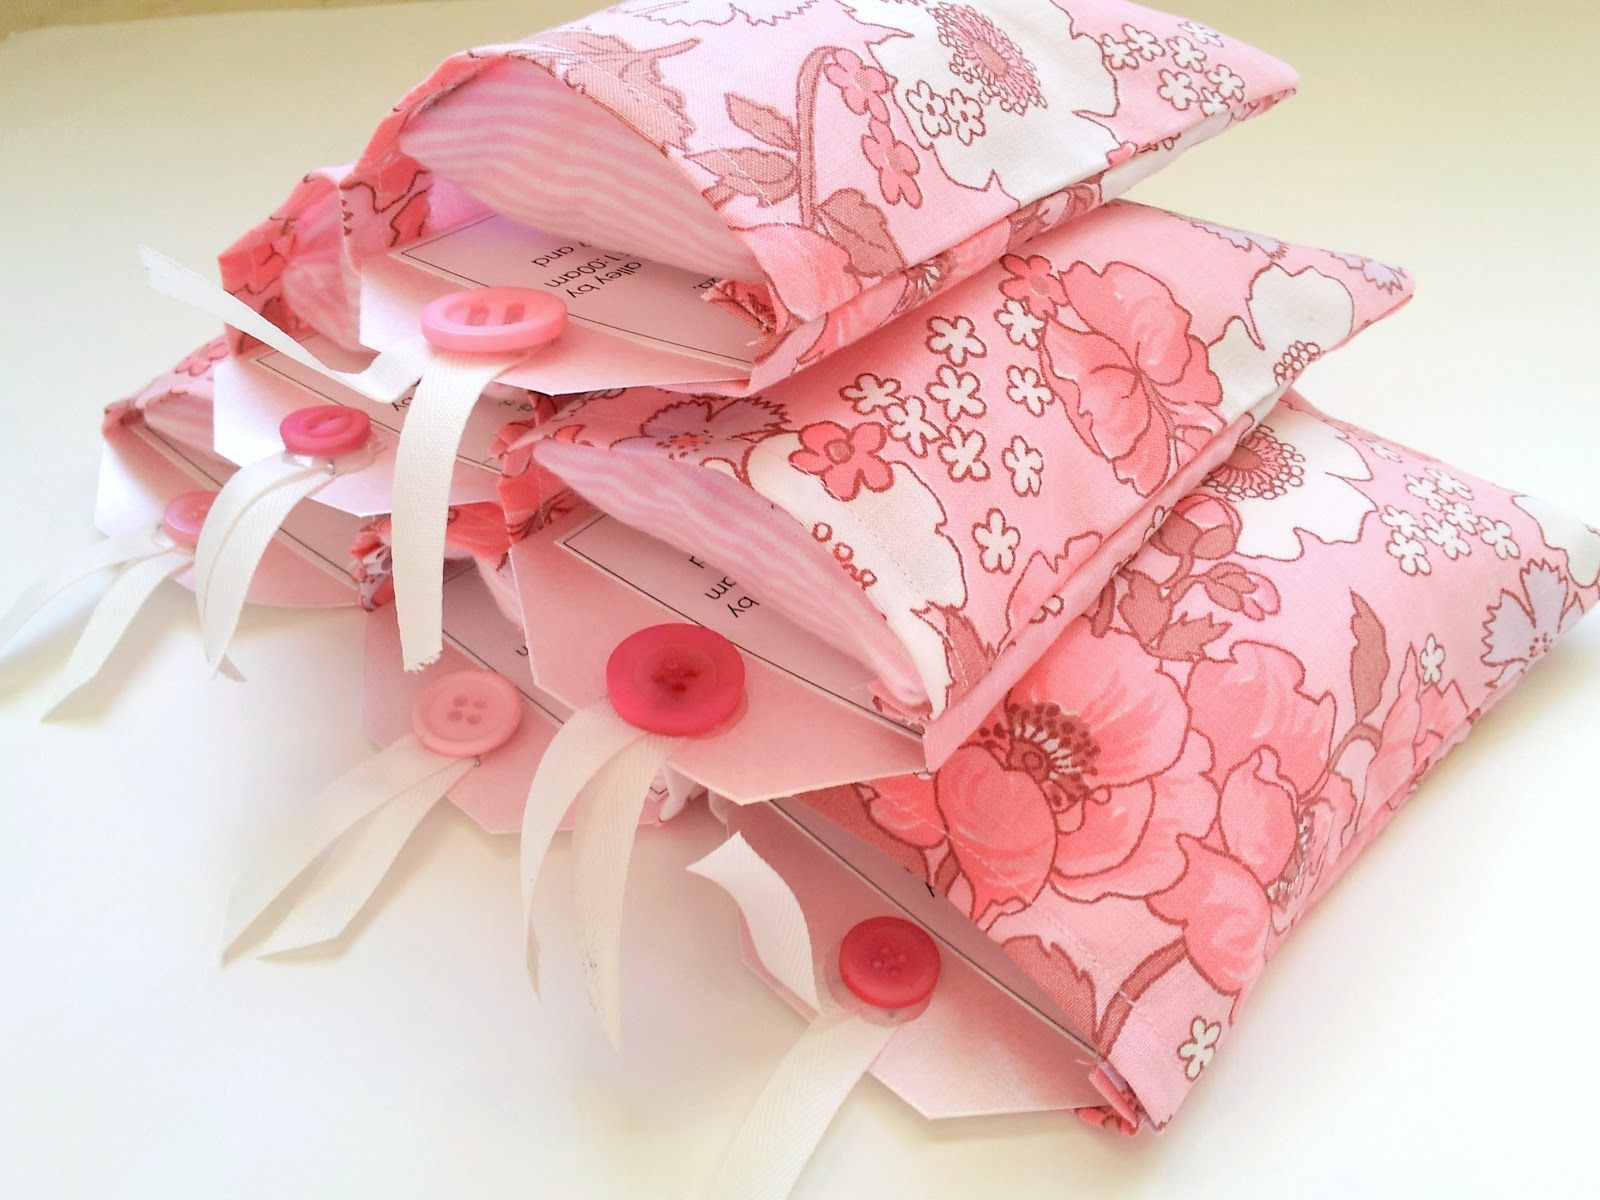 invitations in little pillow cases ~ Slumber Party Invitations ~ The ...